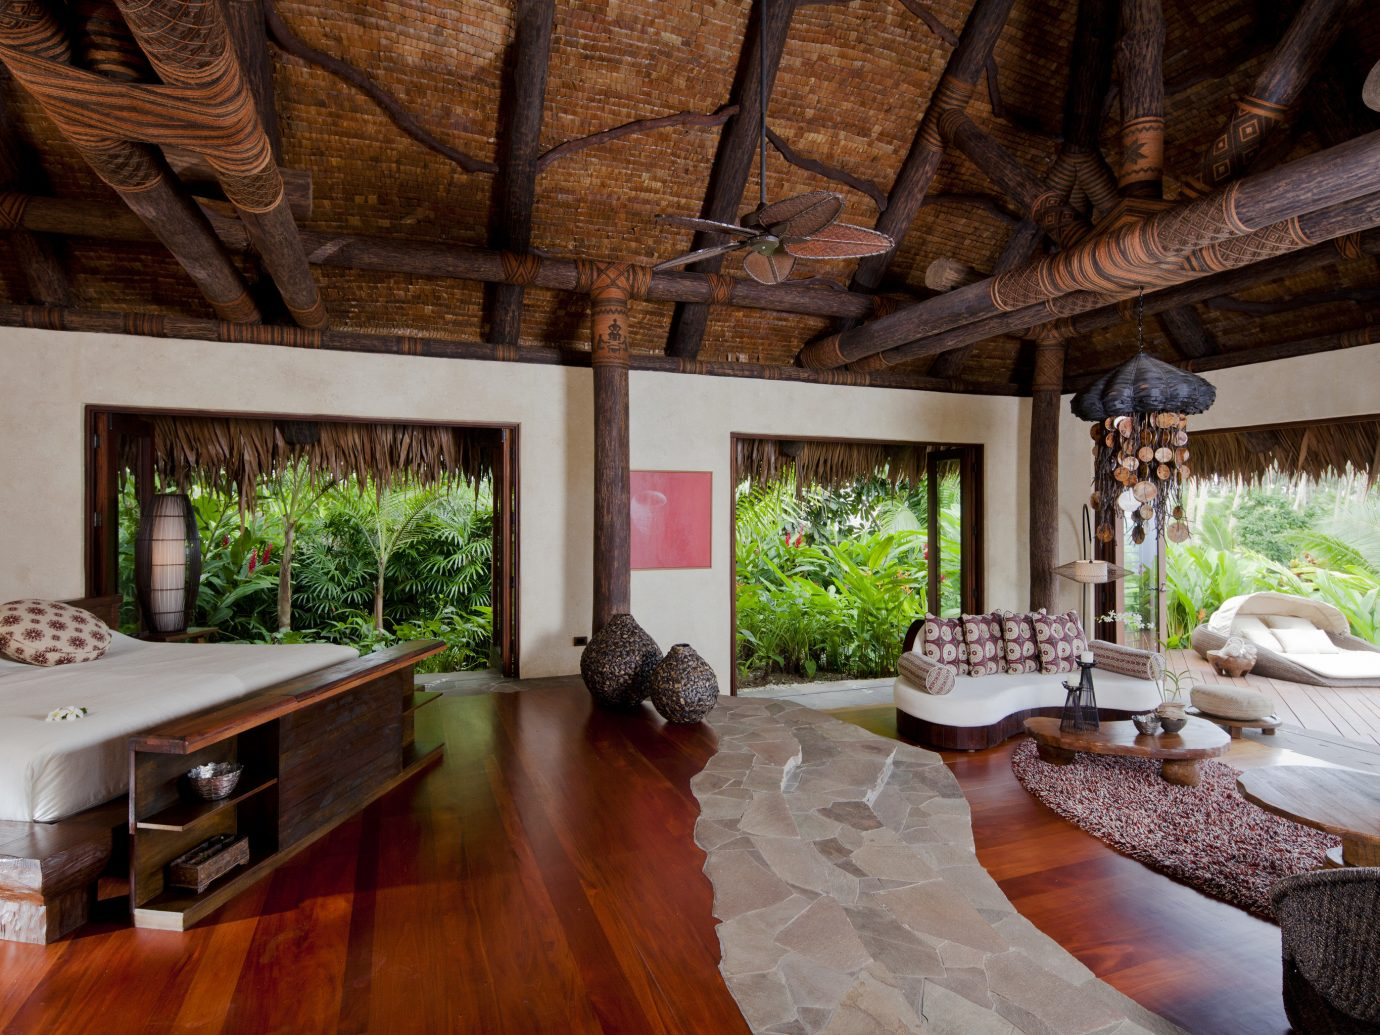 All-Inclusive Resorts Hotels Luxury Travel indoor floor property Living room estate living room home house interior design Villa real estate cottage wood mansion farmhouse furniture decorated stone